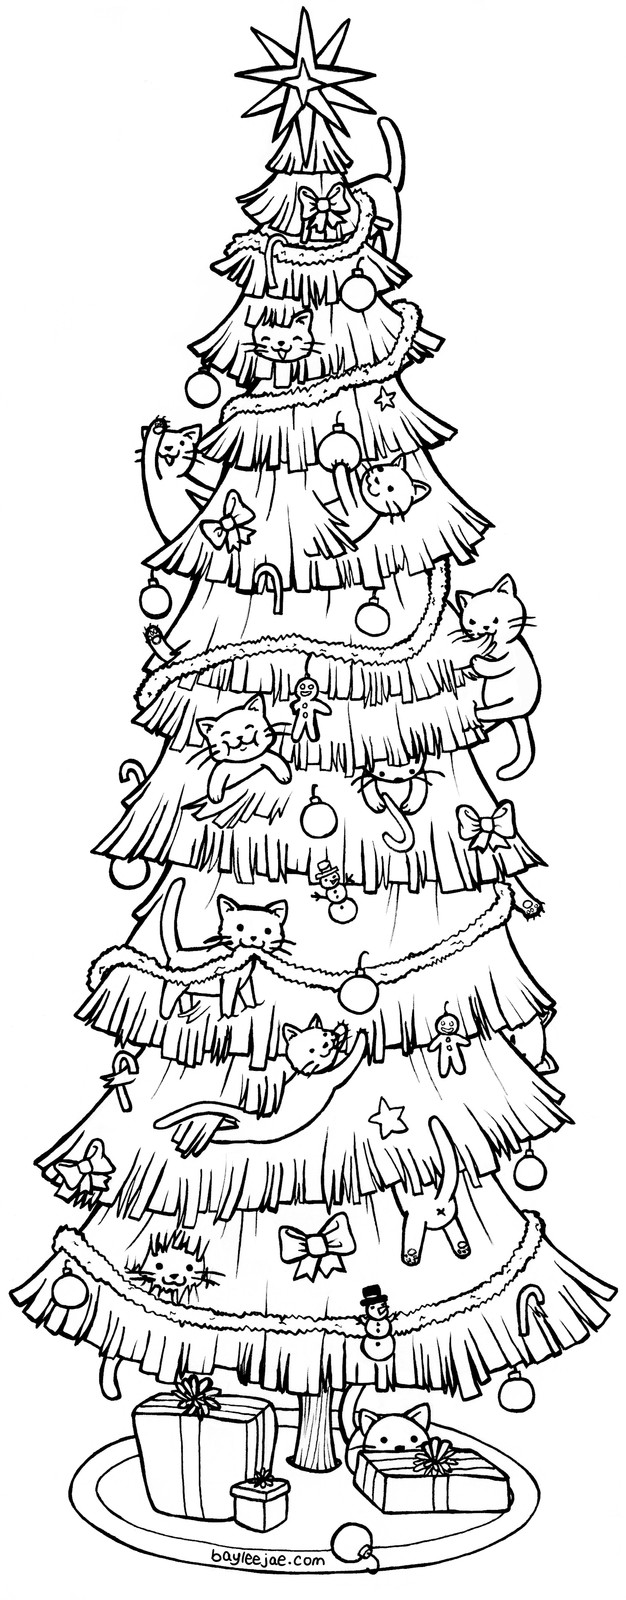 coloring pages baylee jae - bayleejae colouring pages